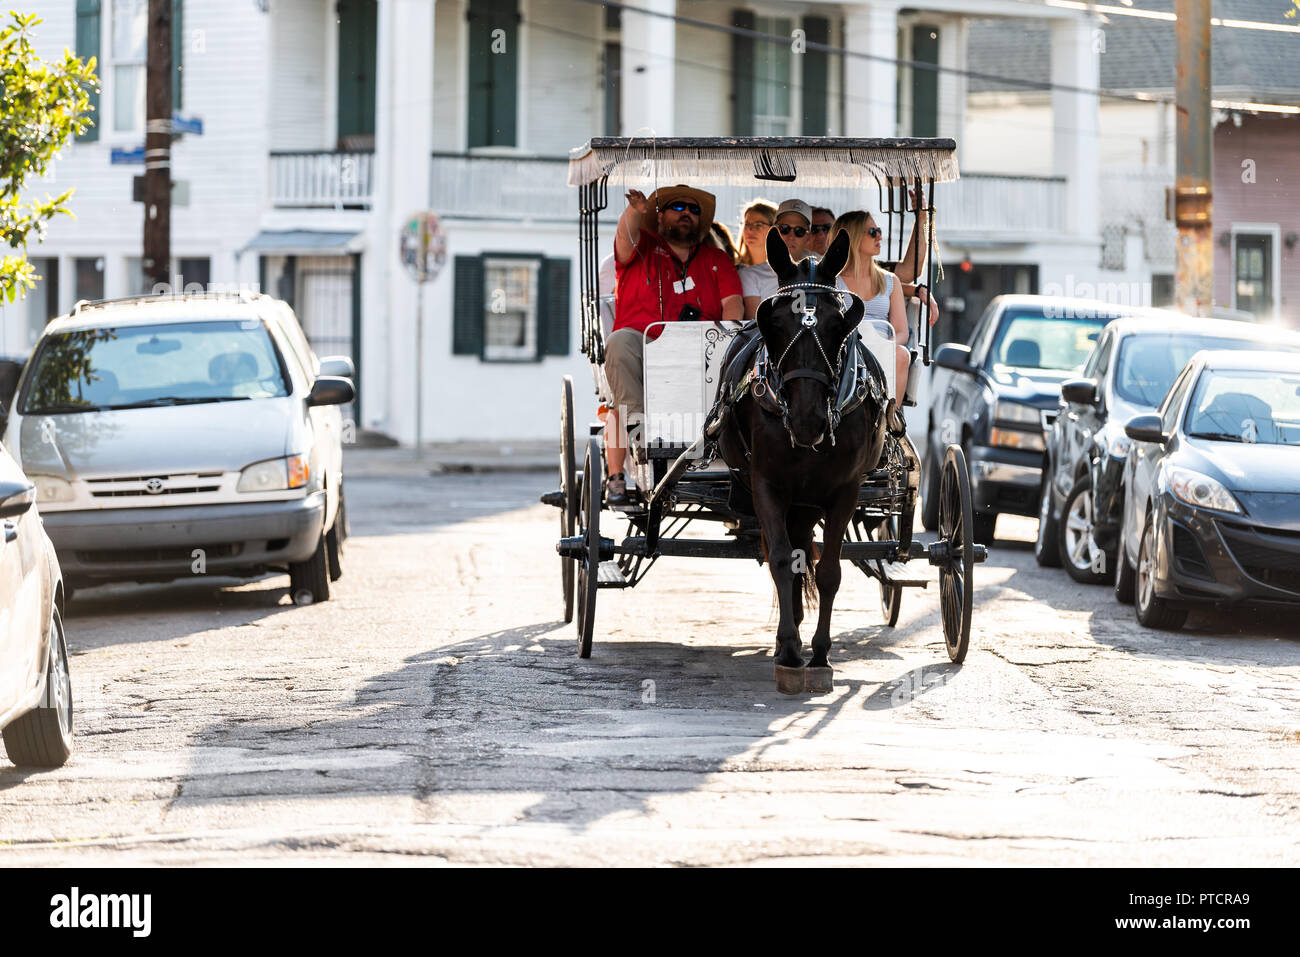 New Orleans, USA - April 22, 2018: Street in downtown historic city in Louisiana with horse and carriage buggy tour guide during sunset - Stock Image